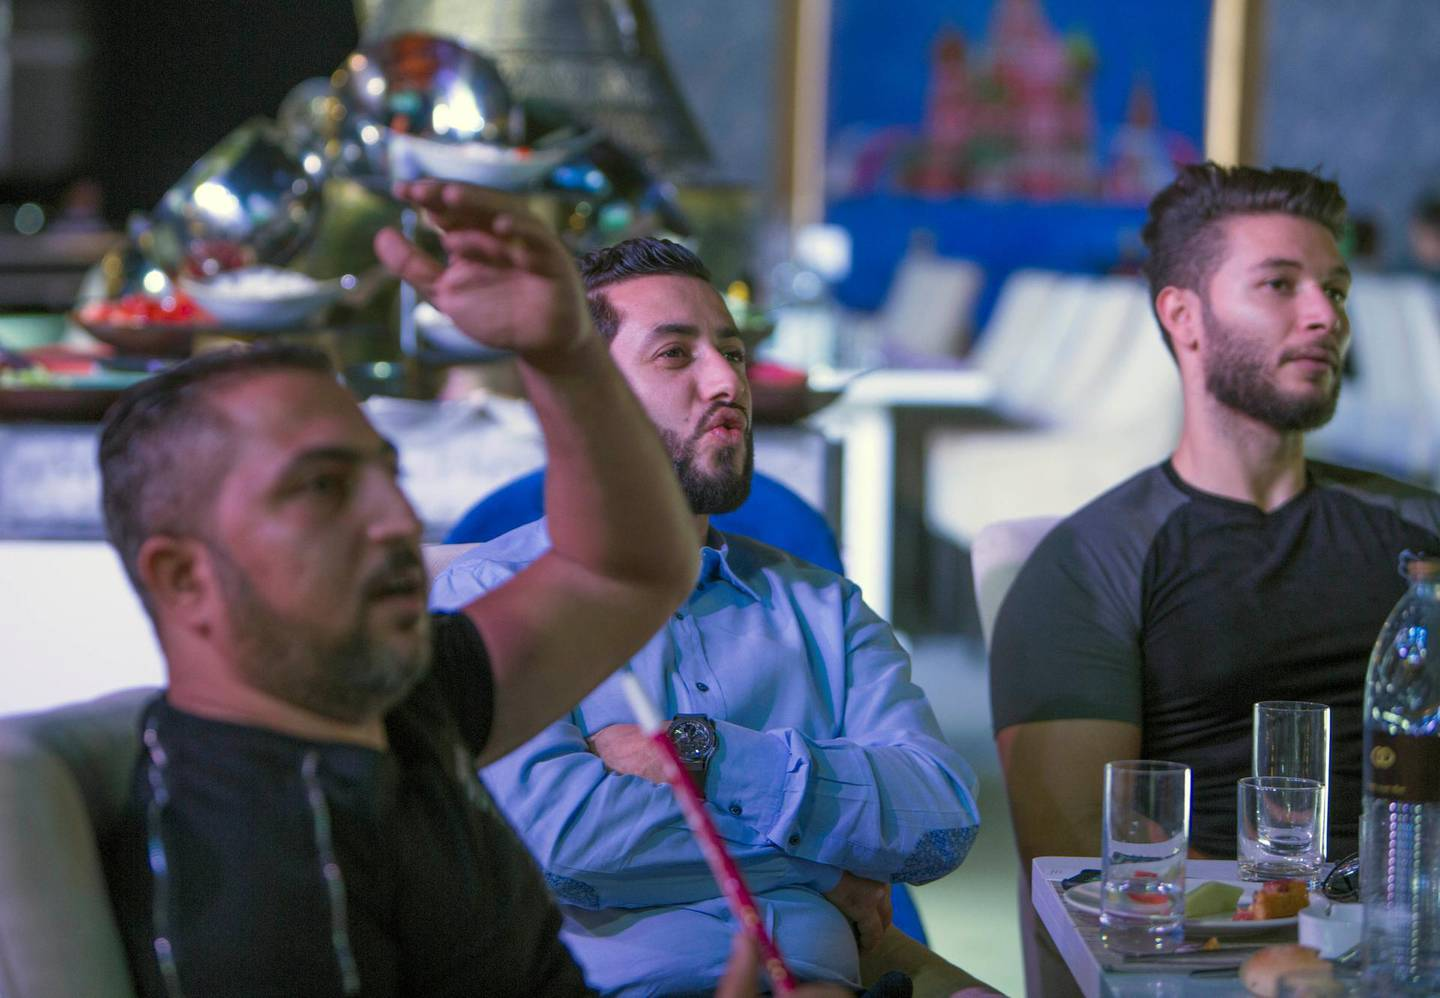 ABU DHABI, UNITED ARAB EMIRATES, 14 June 2018 - Football fans watching the games between Saudi and Russia at Sofitel Corniche tent in Abu Dhabi.  Leslie Pableo for The National story by Anna Zacharias